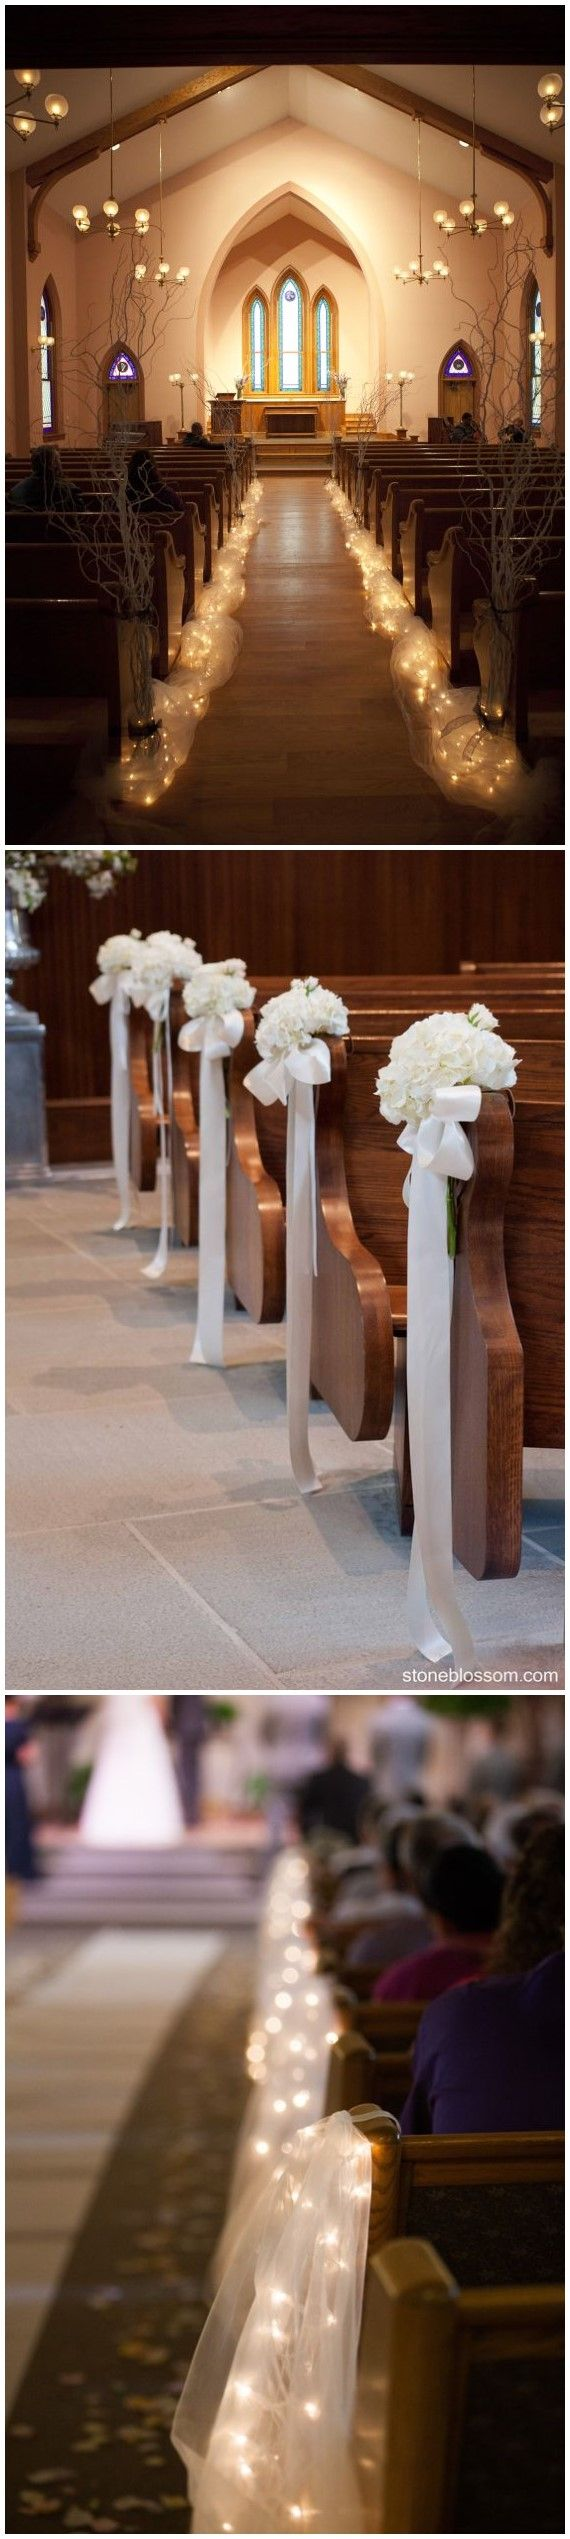 17 best ideas about wedding church aisle on pinterest for Aisle wedding decoration ideas